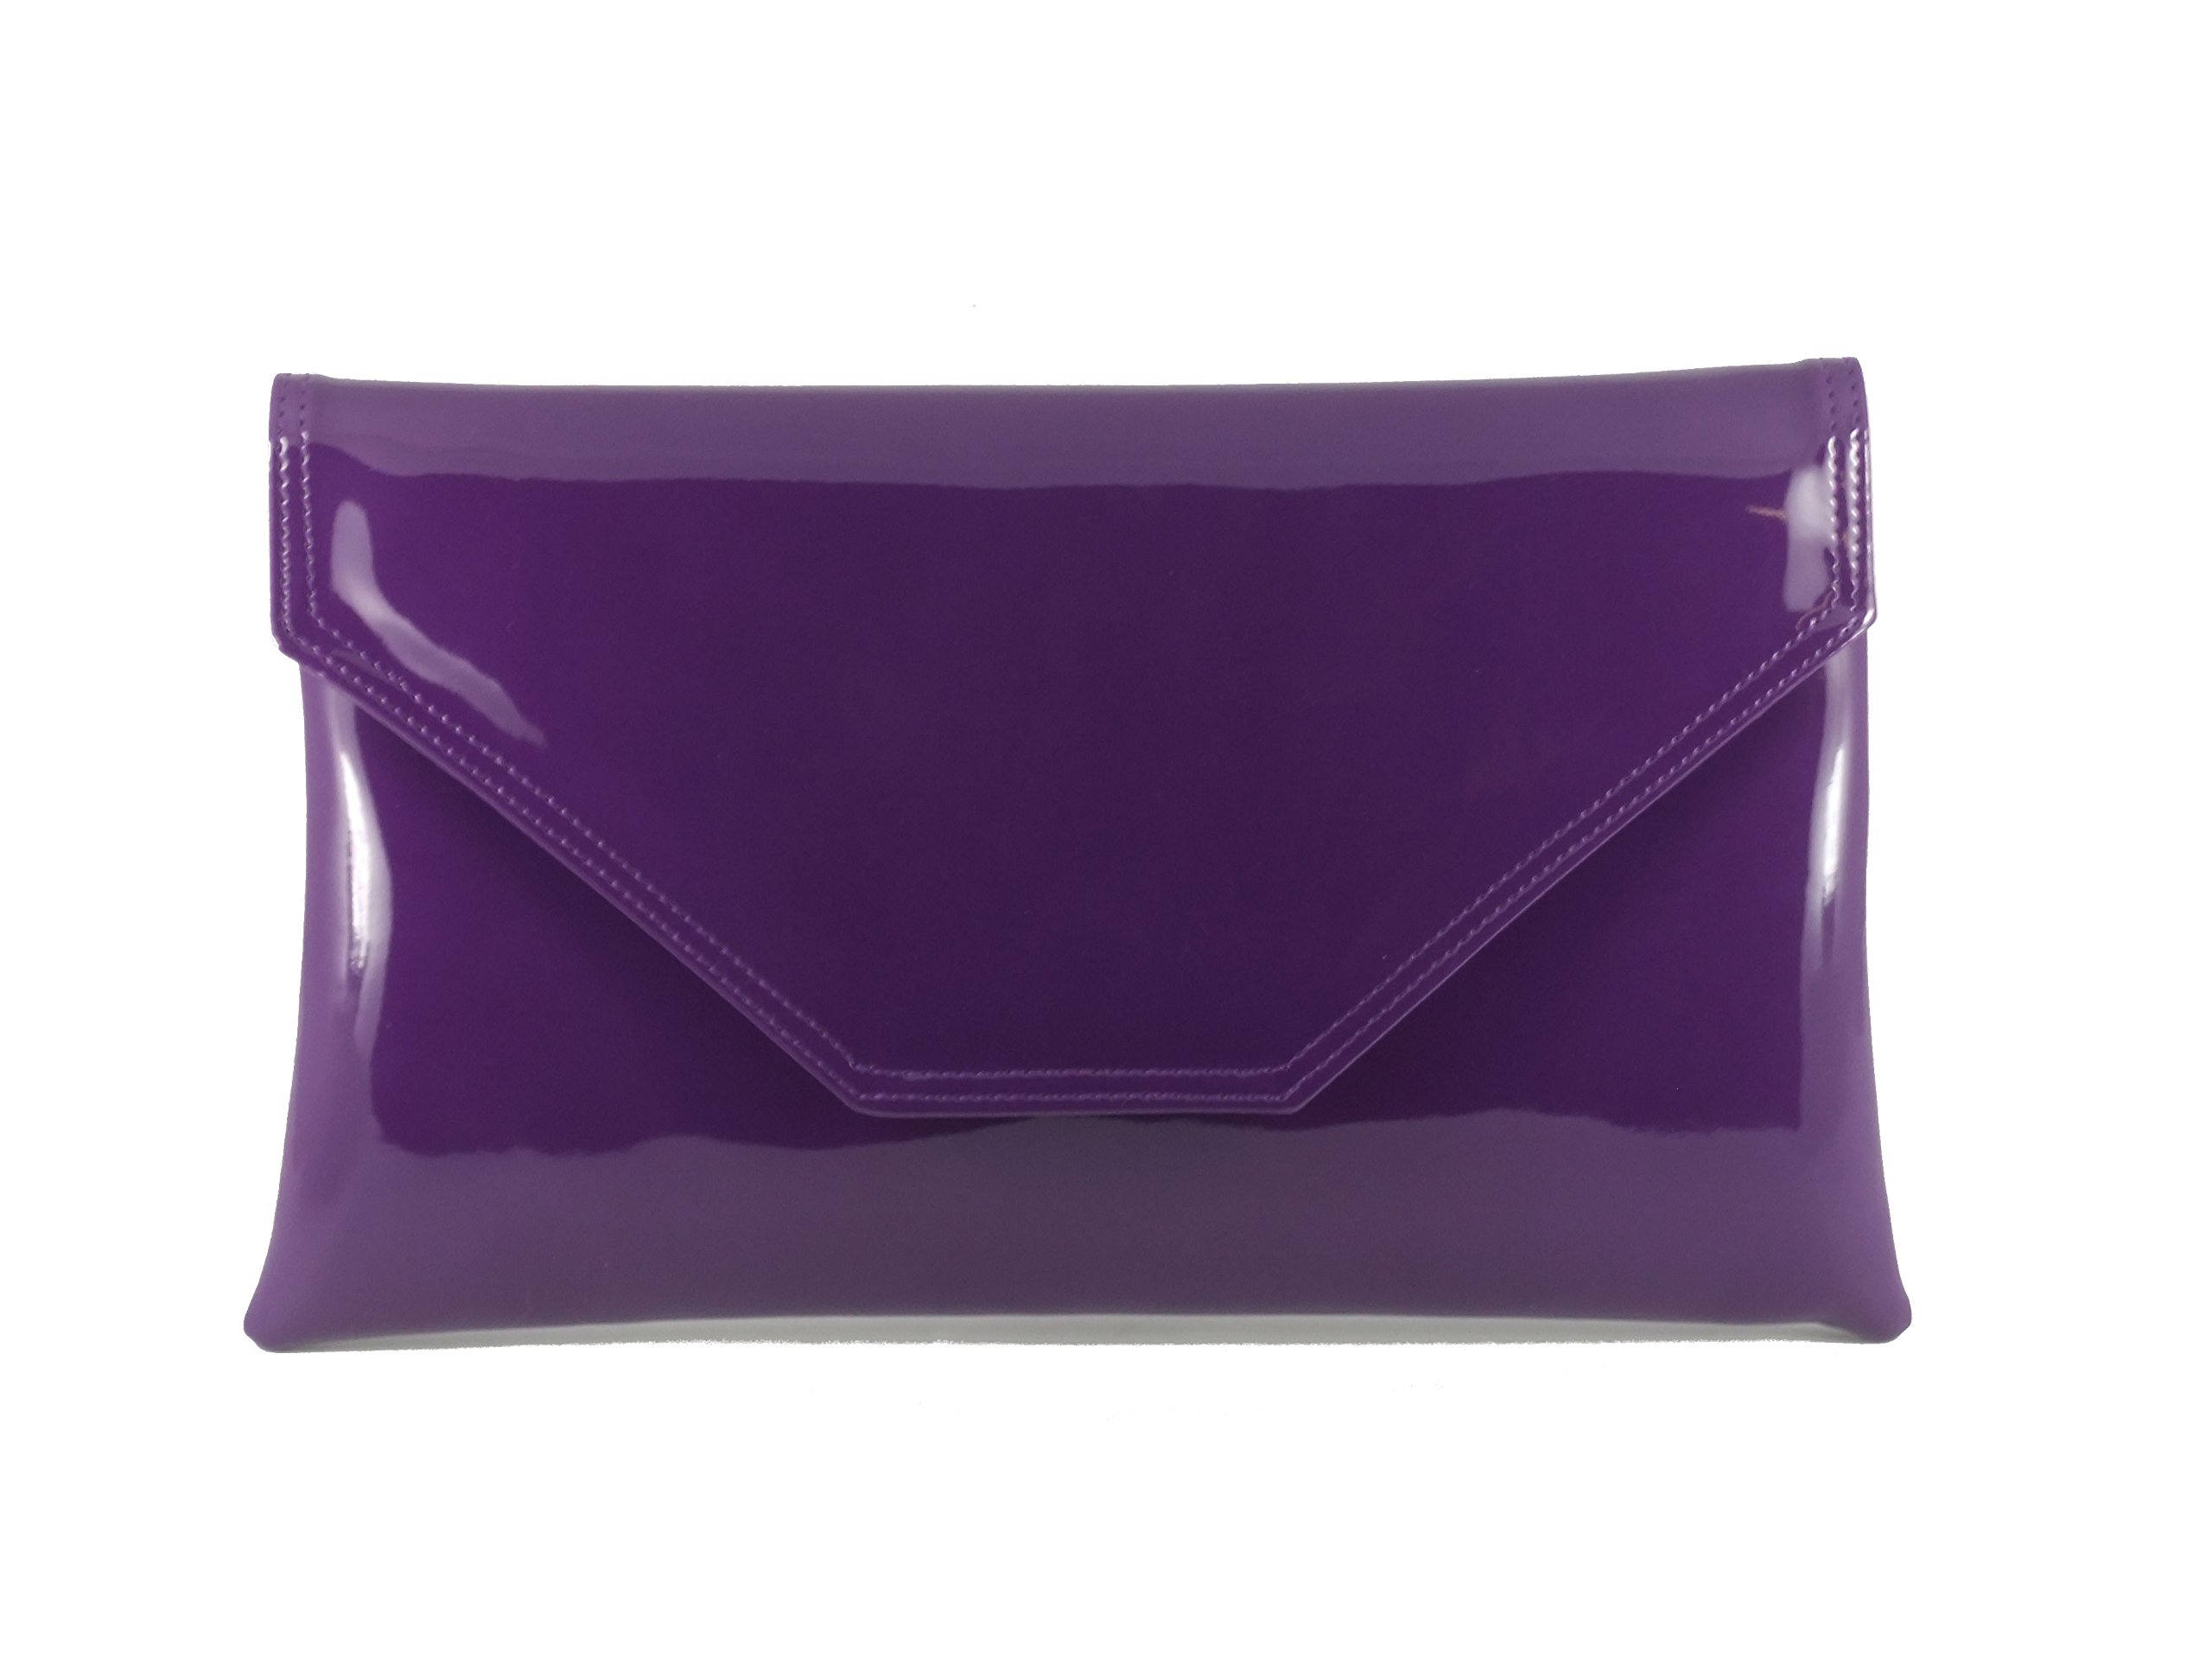 Loni Womens Stylish Large Envelope Patent Clutch Bag/Shoulder Bag Wedding Party Prom Bag In Purple